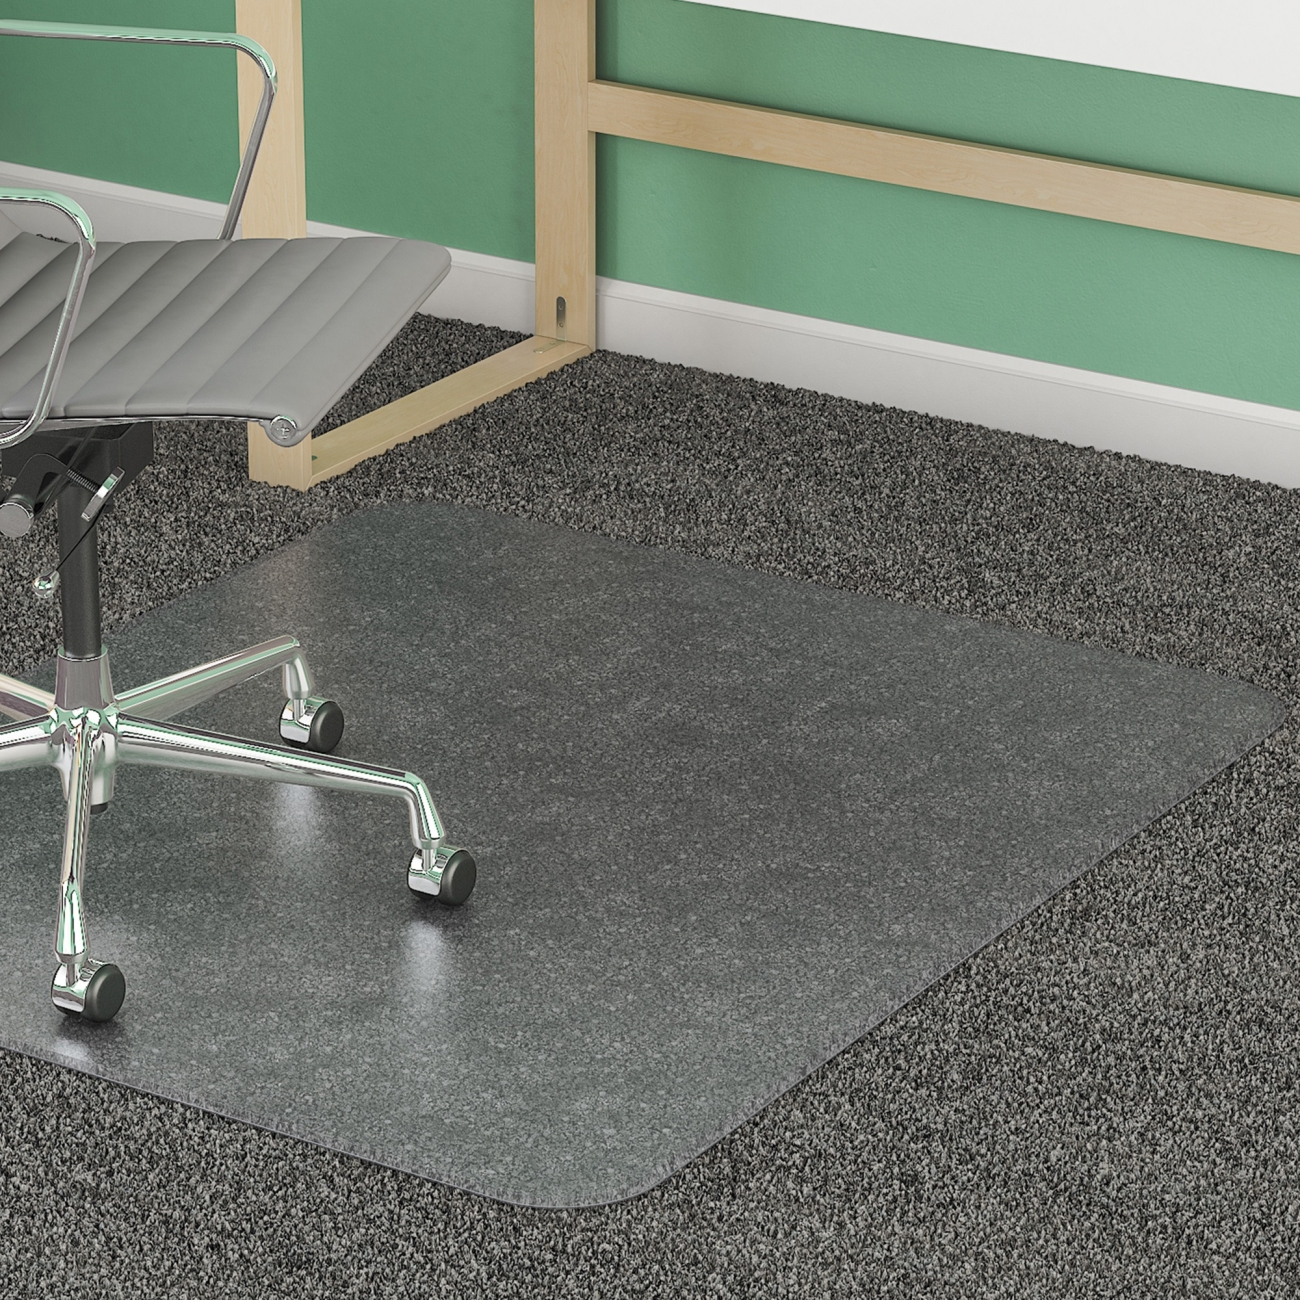 anchormat 250 best chair mat for home chair